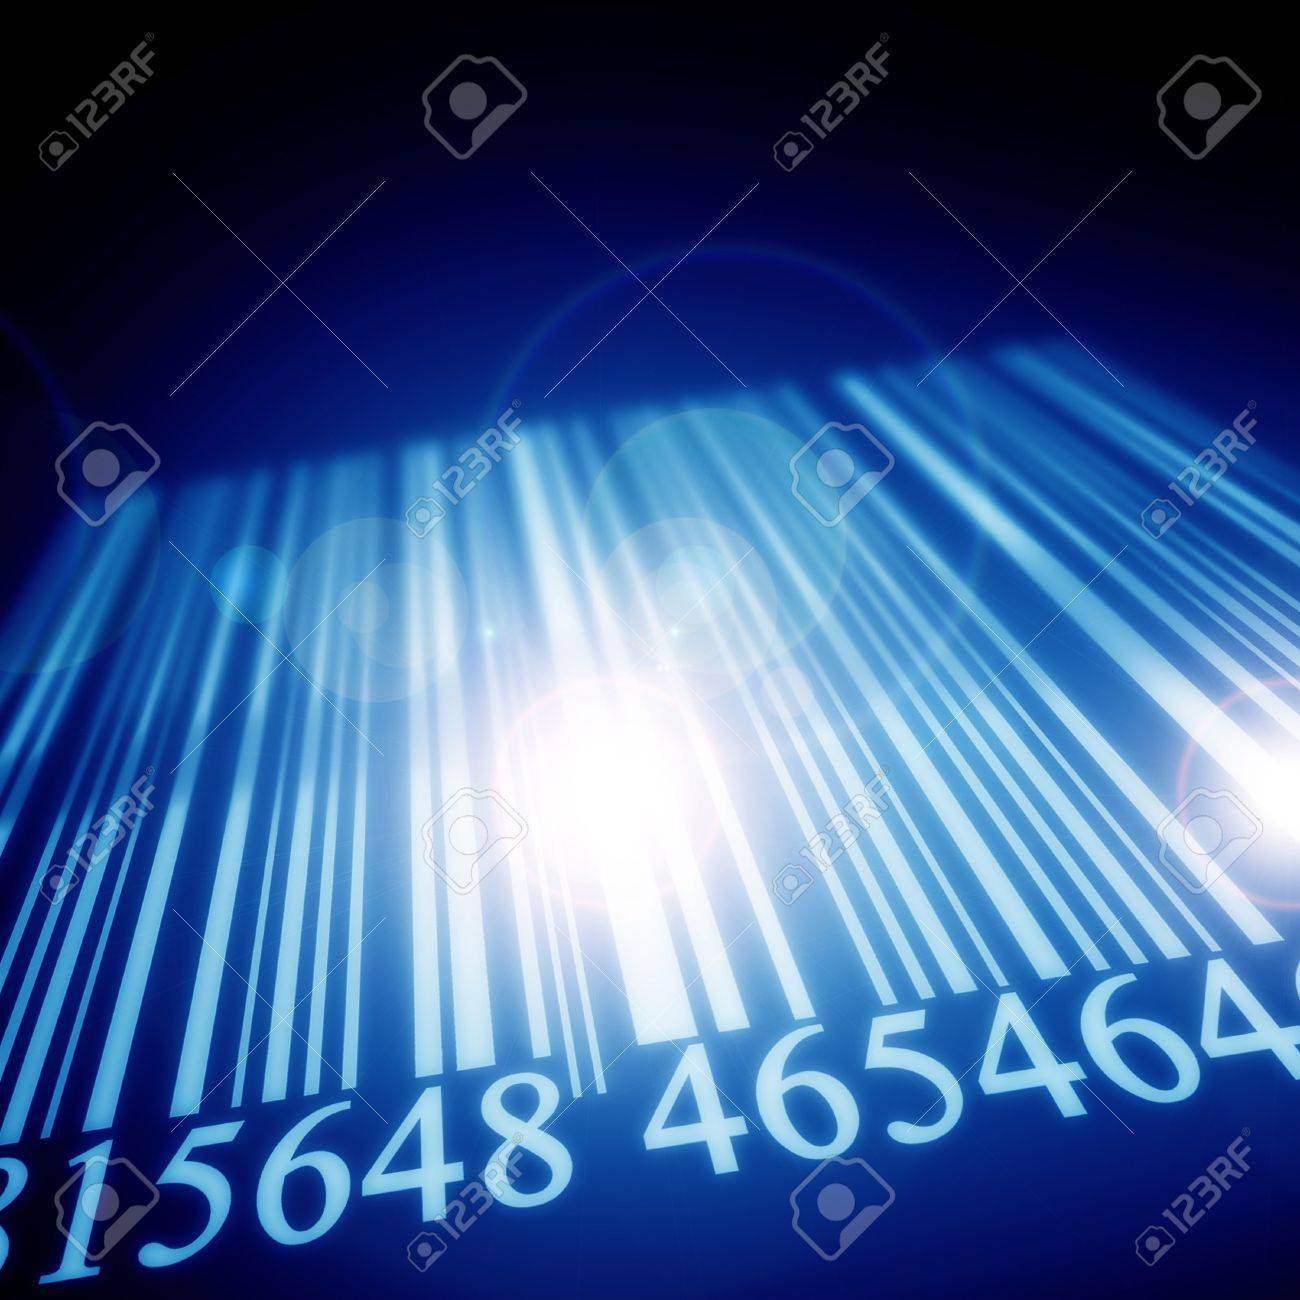 Bar code on a blurred background with some highlights Stock Photo - 15612659